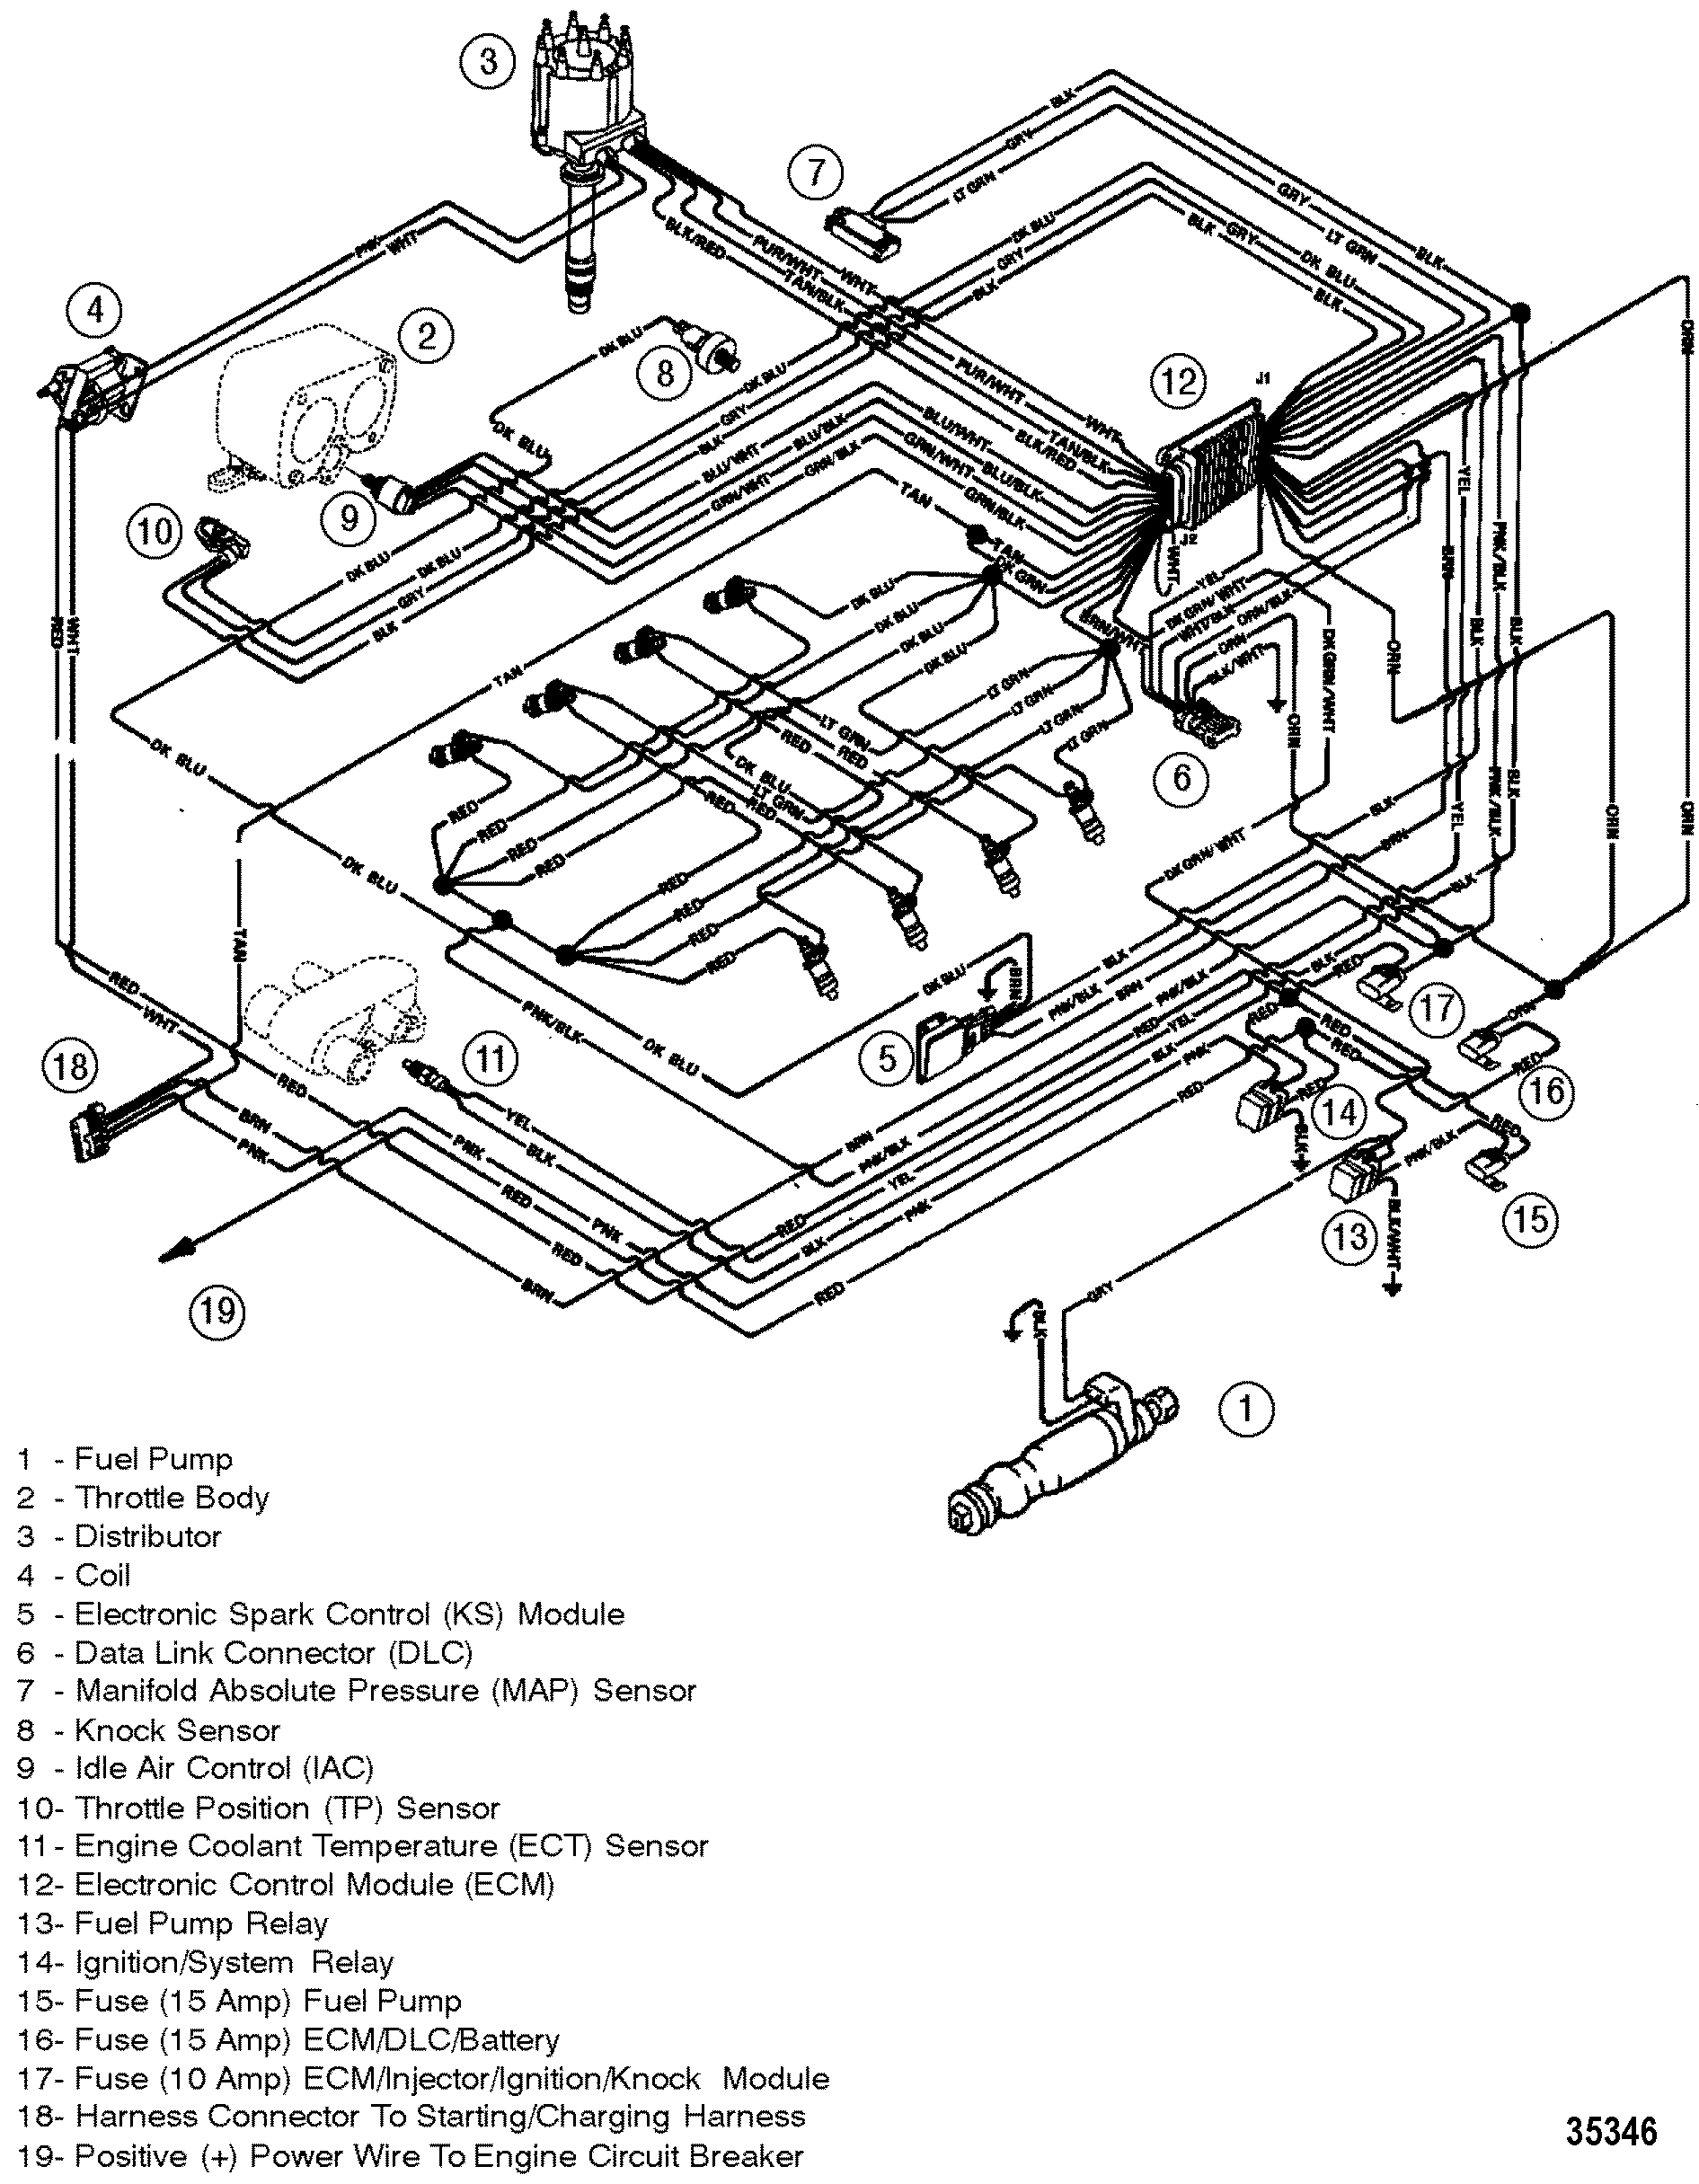 cp performance wiring harness efi GM Throttle Body Wiring Diagram section drawing hover or click to view larger